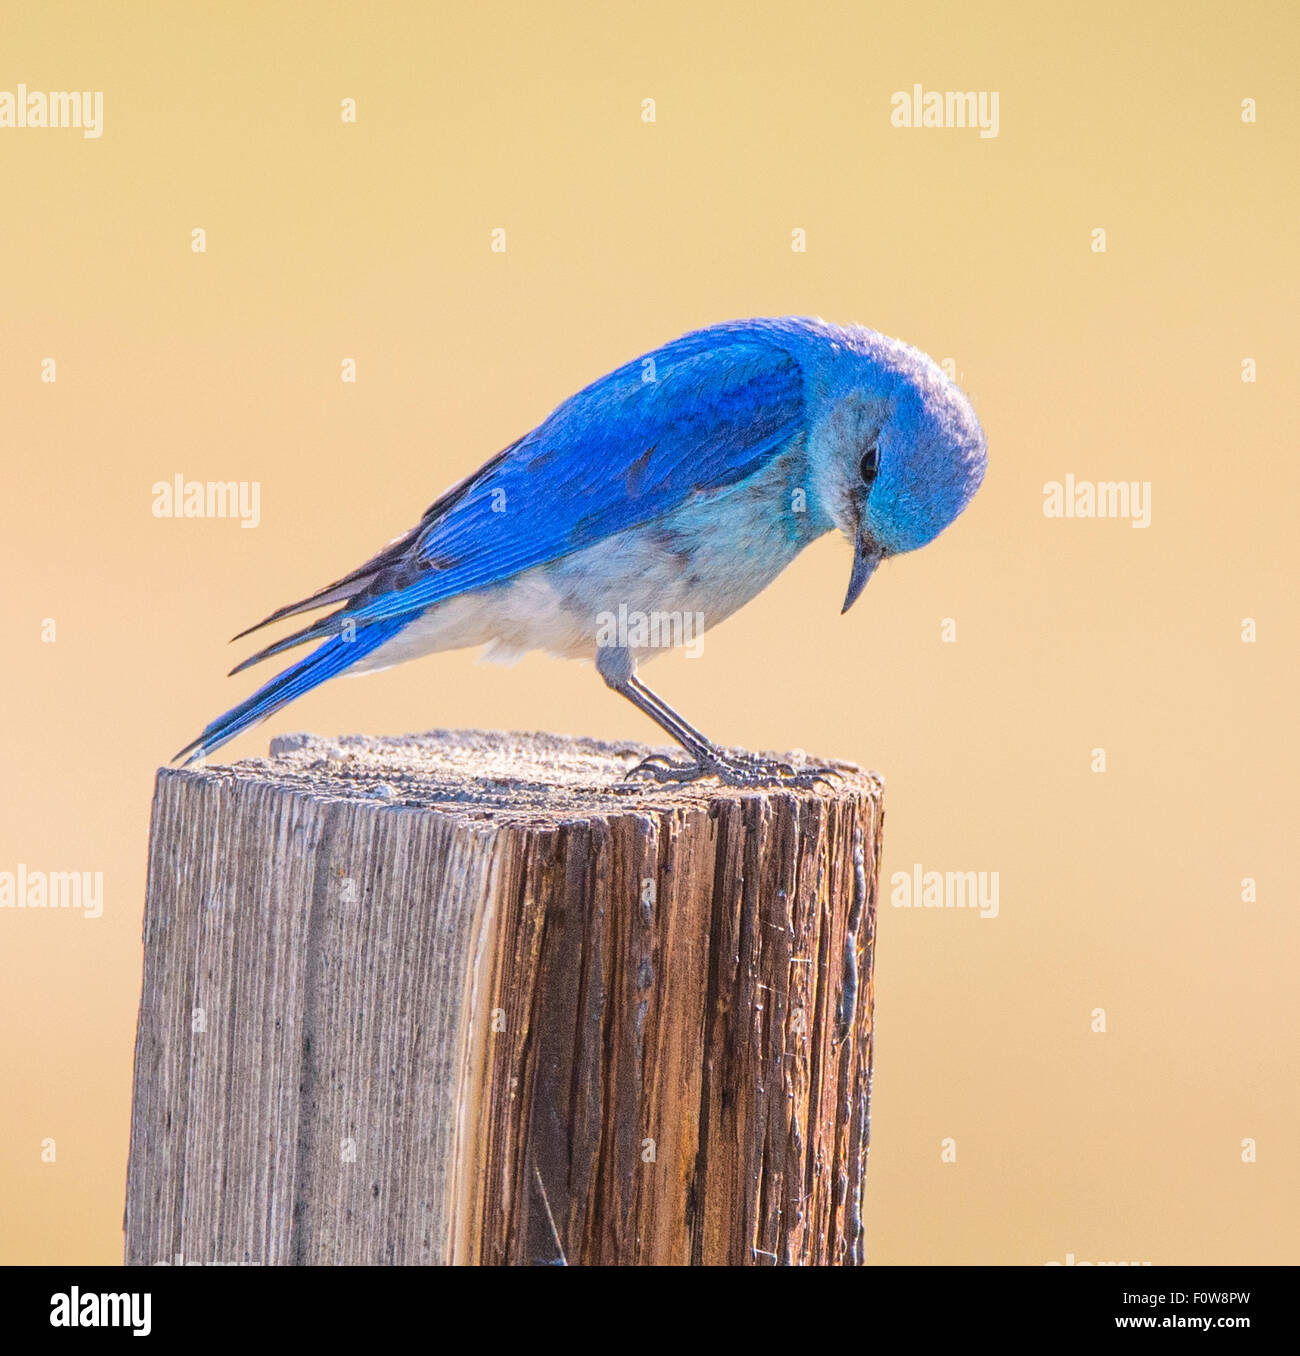 Birds, Male Mountain Blue Bird perched on a fence post, Yellowstone National Park, Wyoming - Stock Image